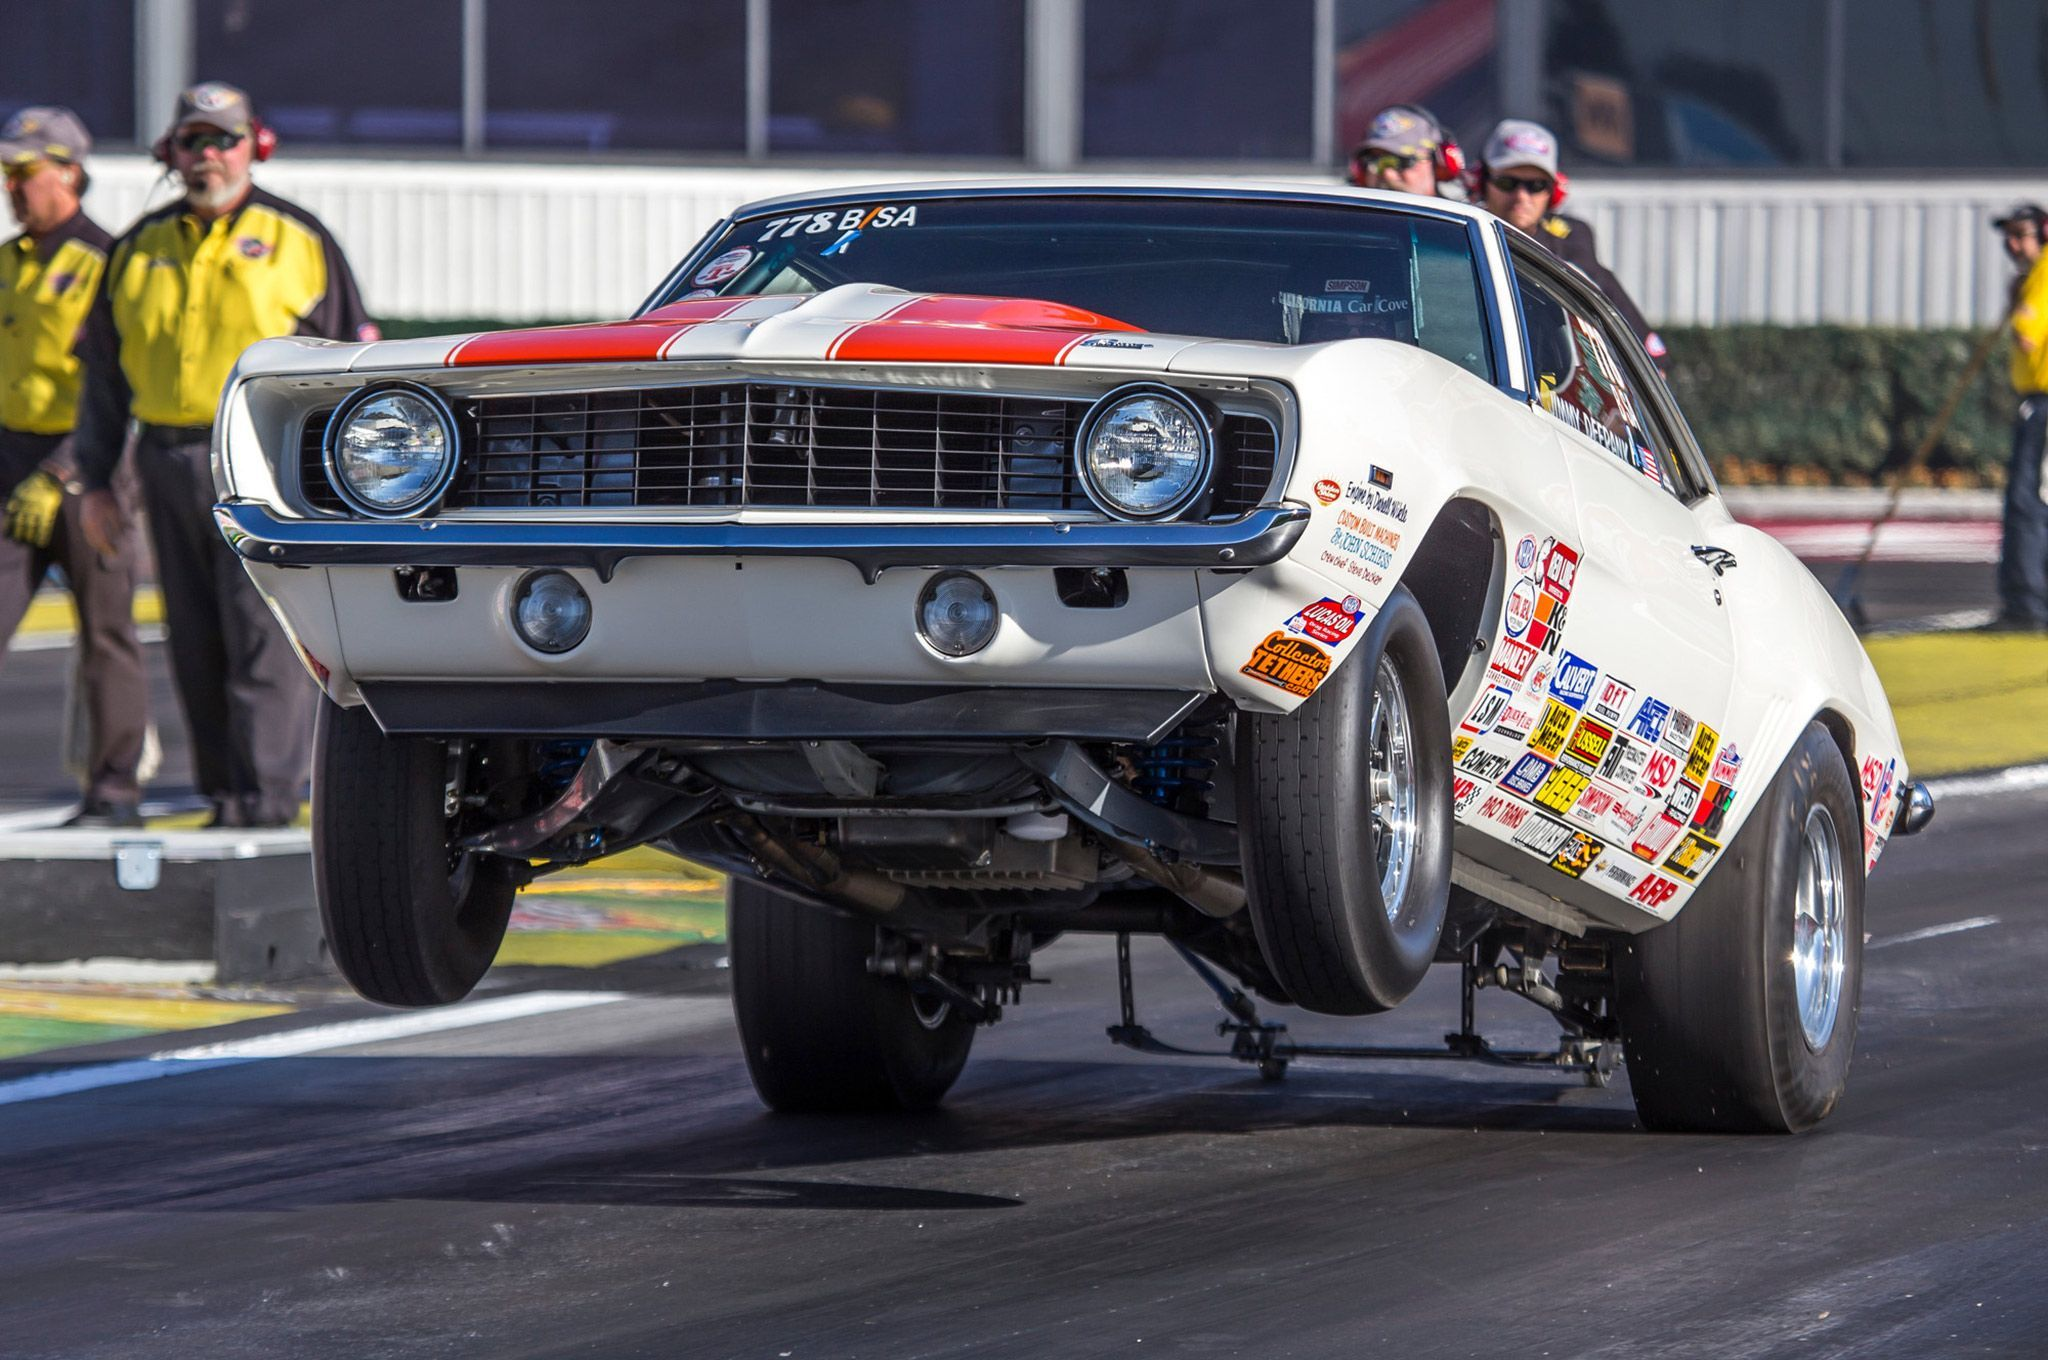 2015-nhra-finals-pomona-chevy-wheelies-06.jpg (2048×1360)